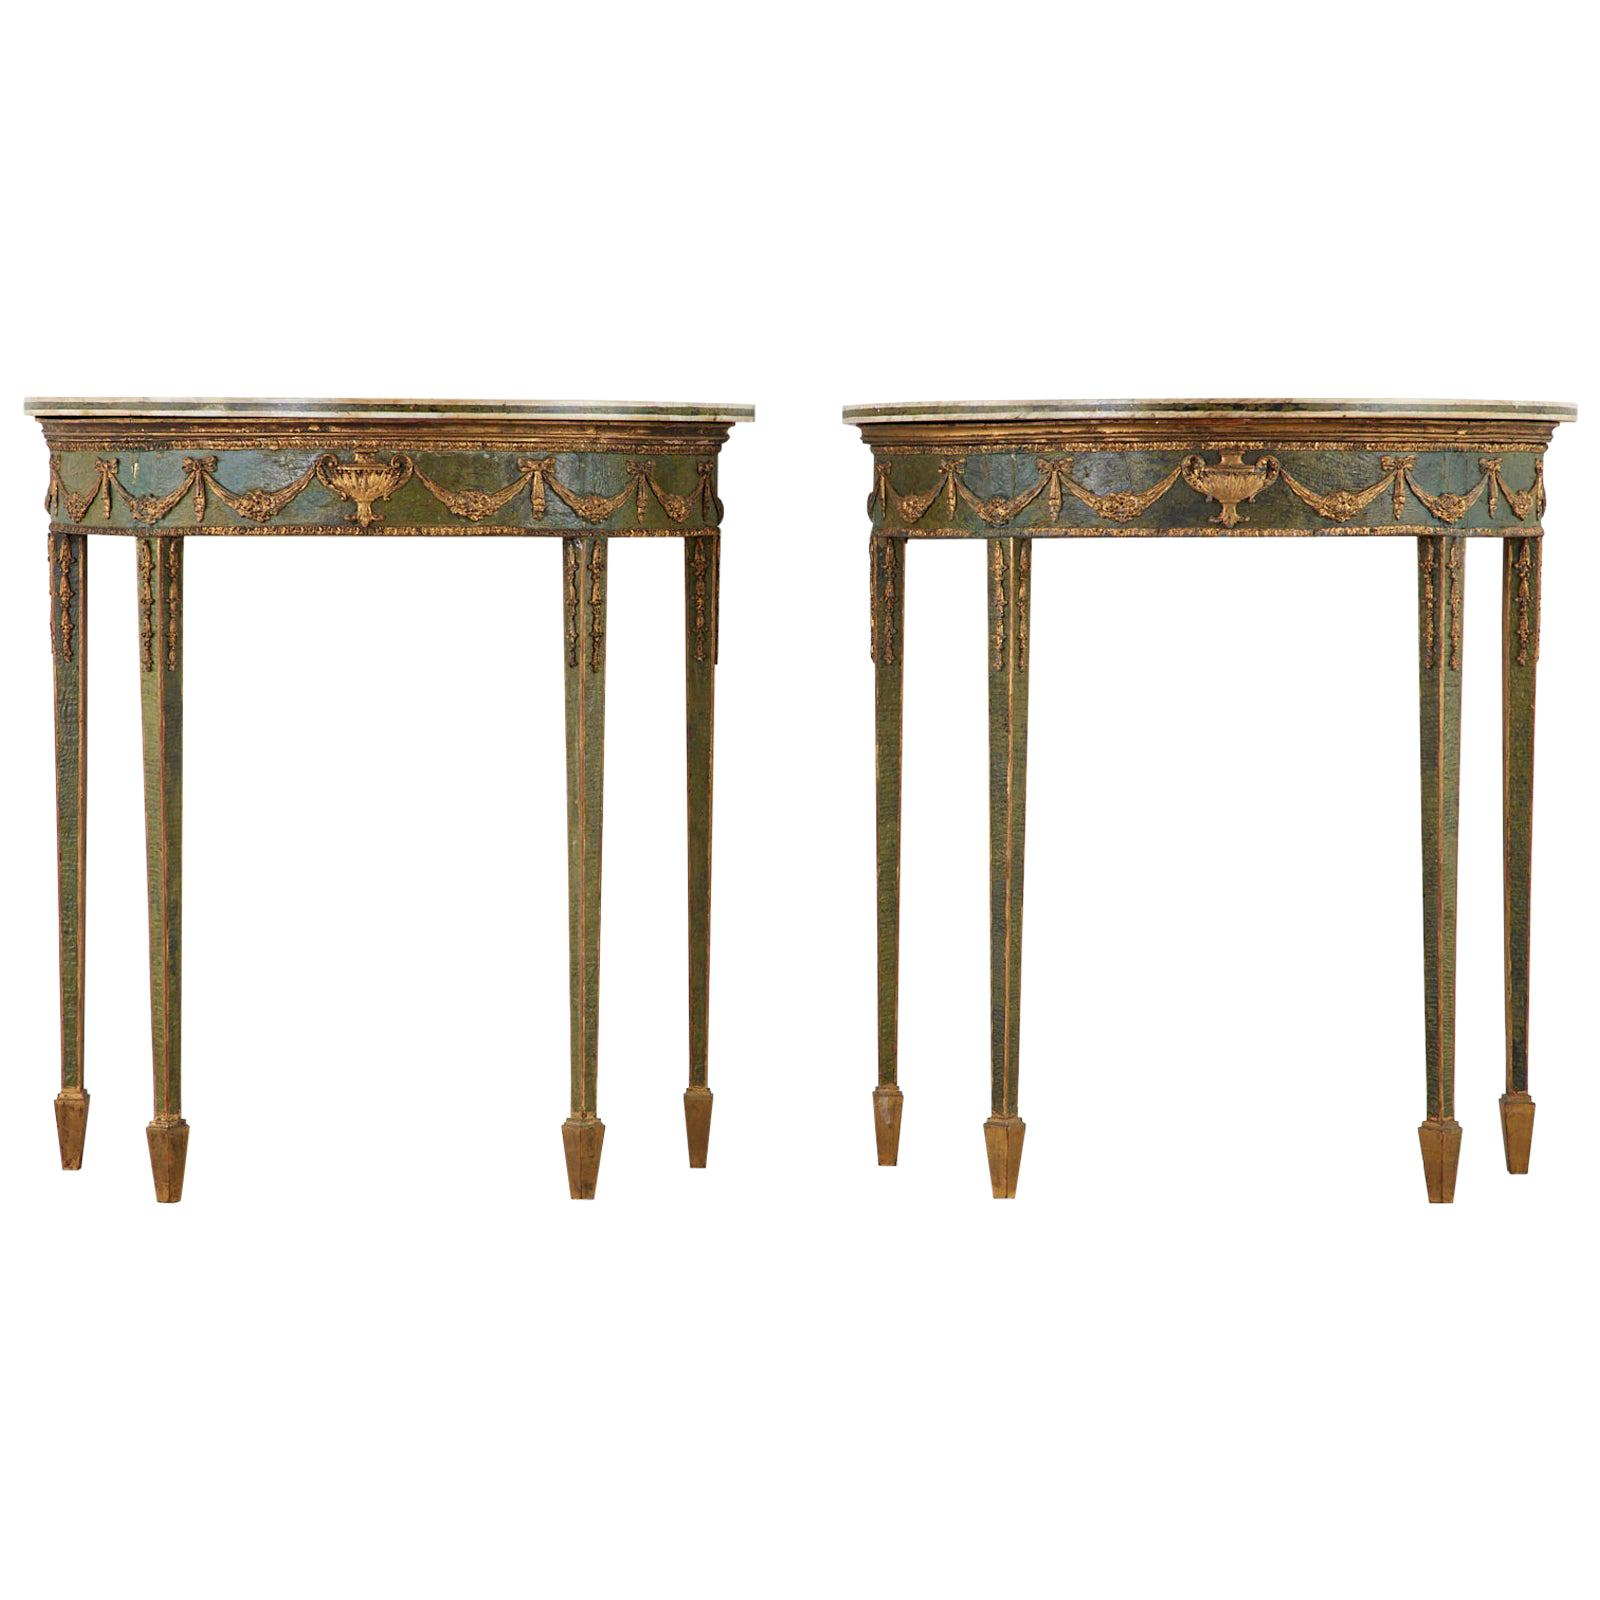 18th Century English Adams Demilune Consoles with Scagliola Marble Tops